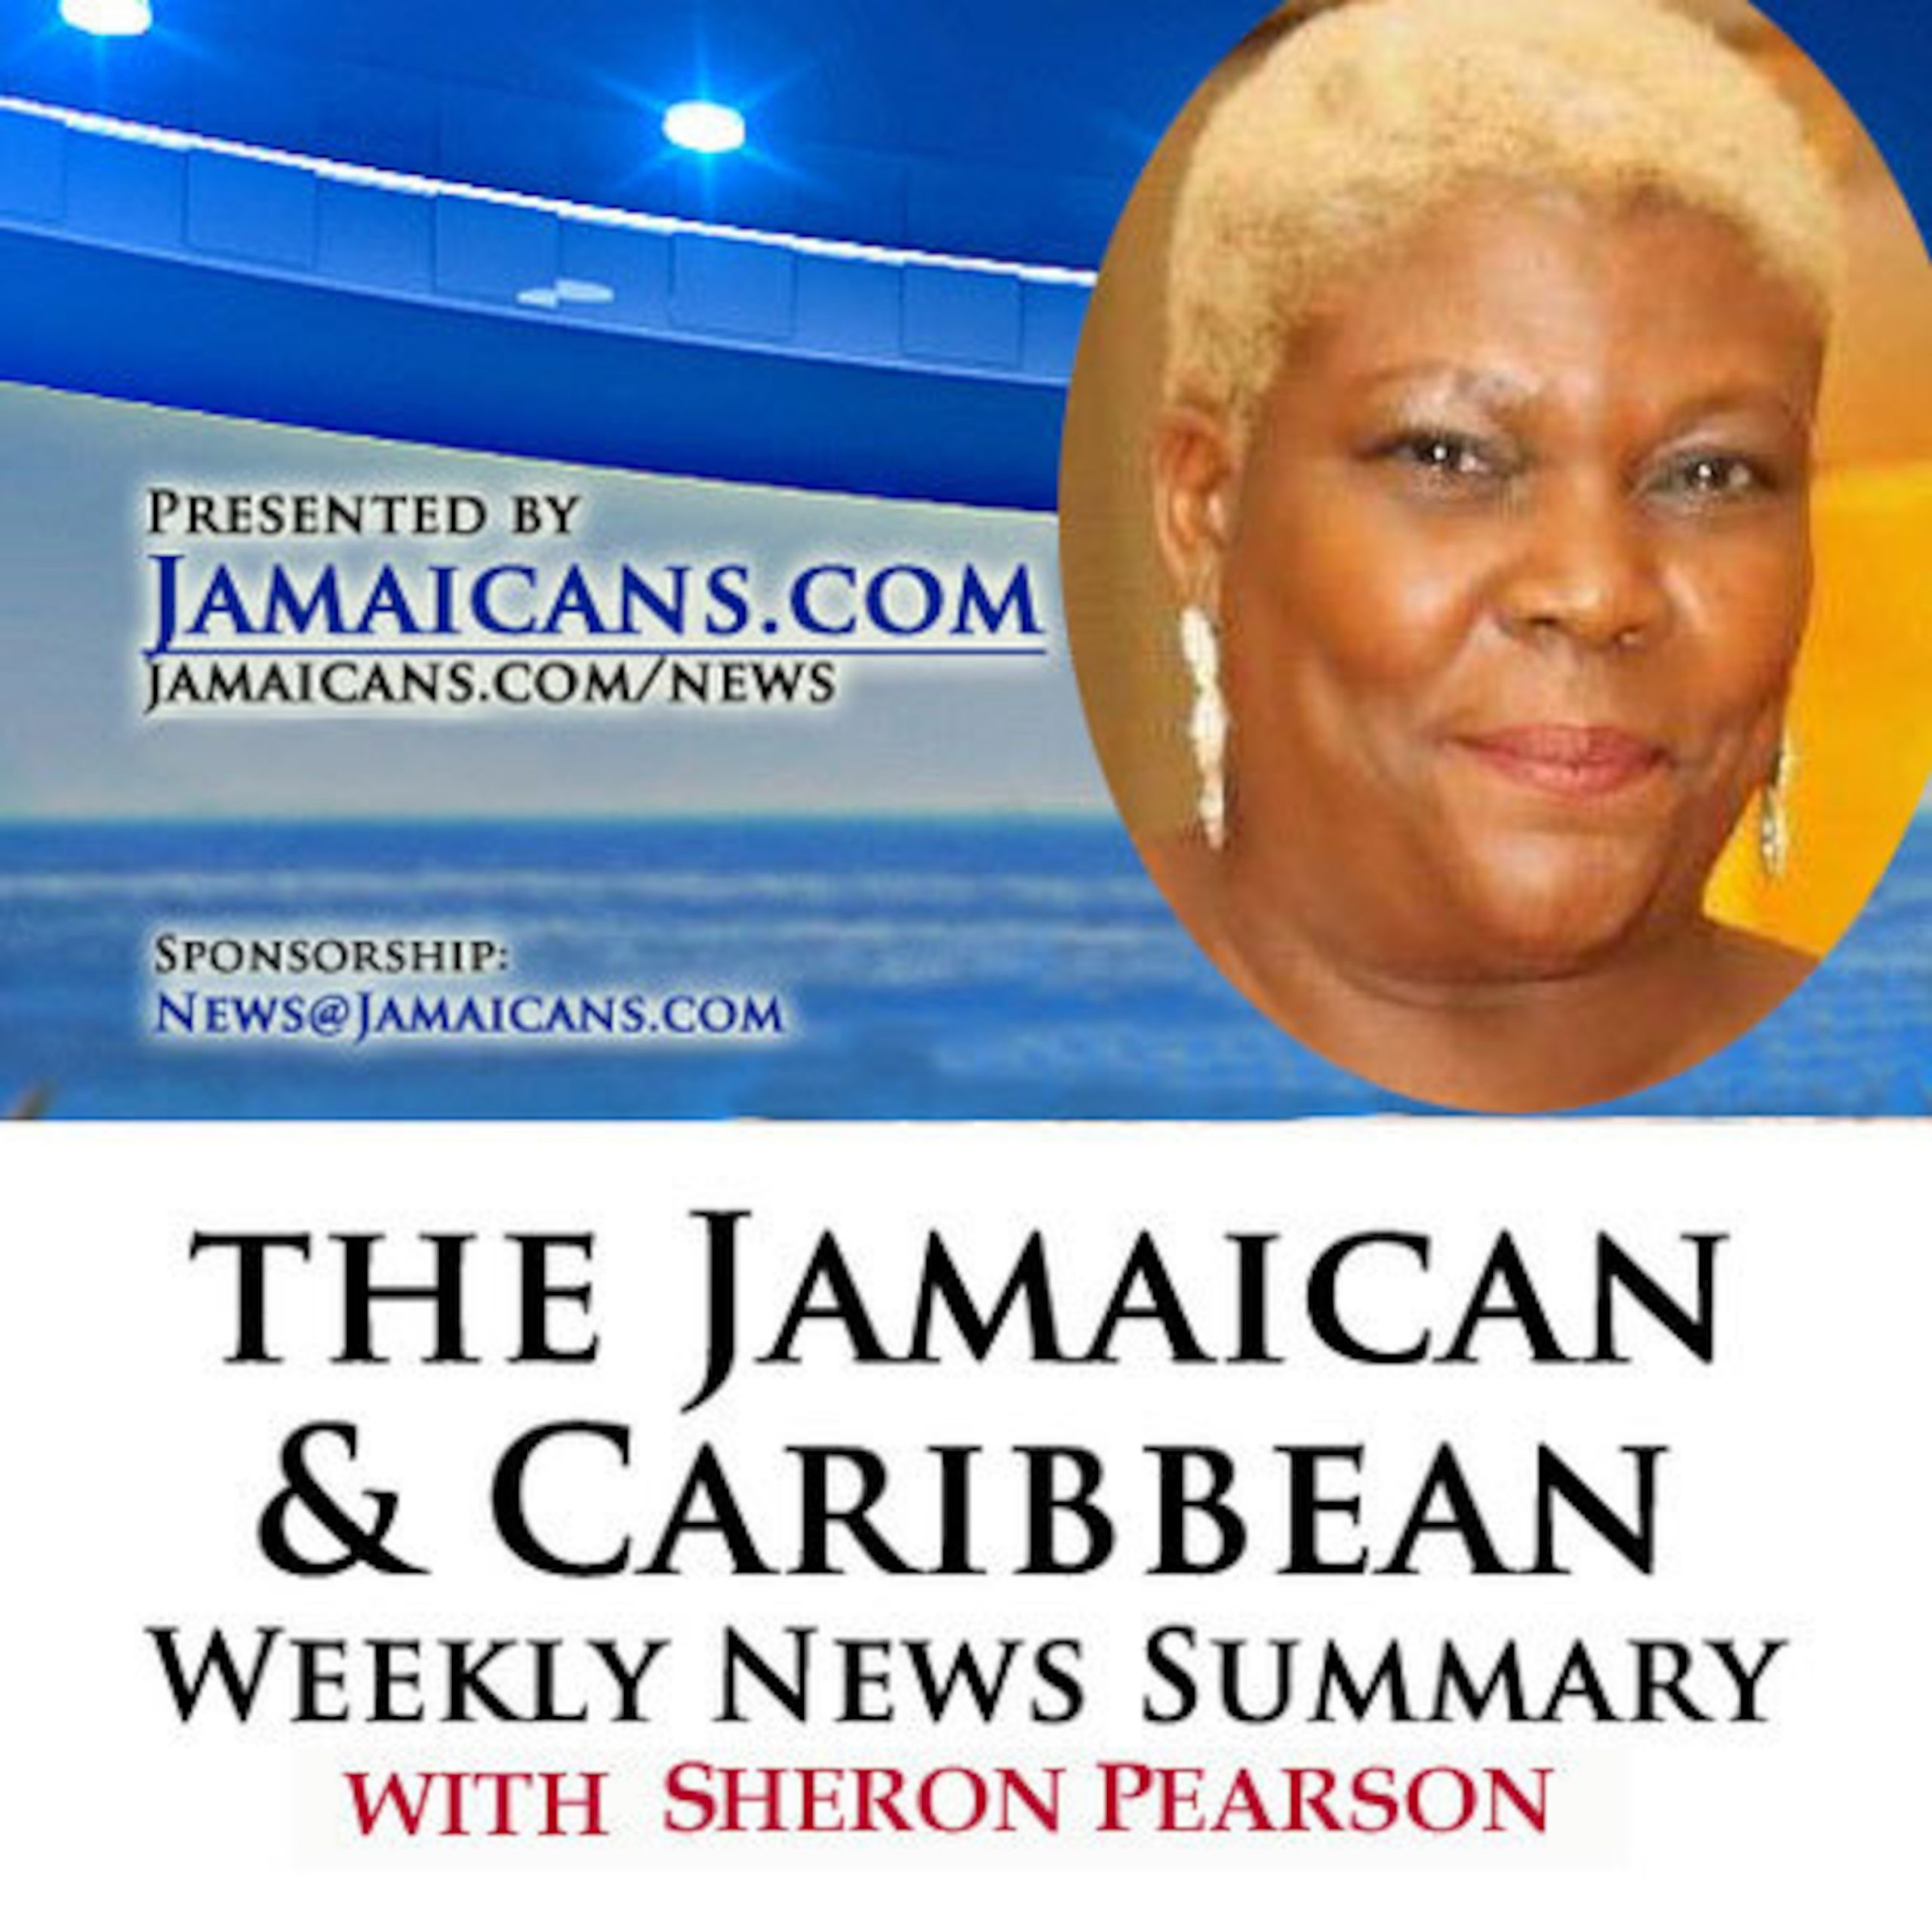 Listen to the Podcast of 7 Jamaican & Caribbean News Stories You May Have missed for the week ending March 20 2020.